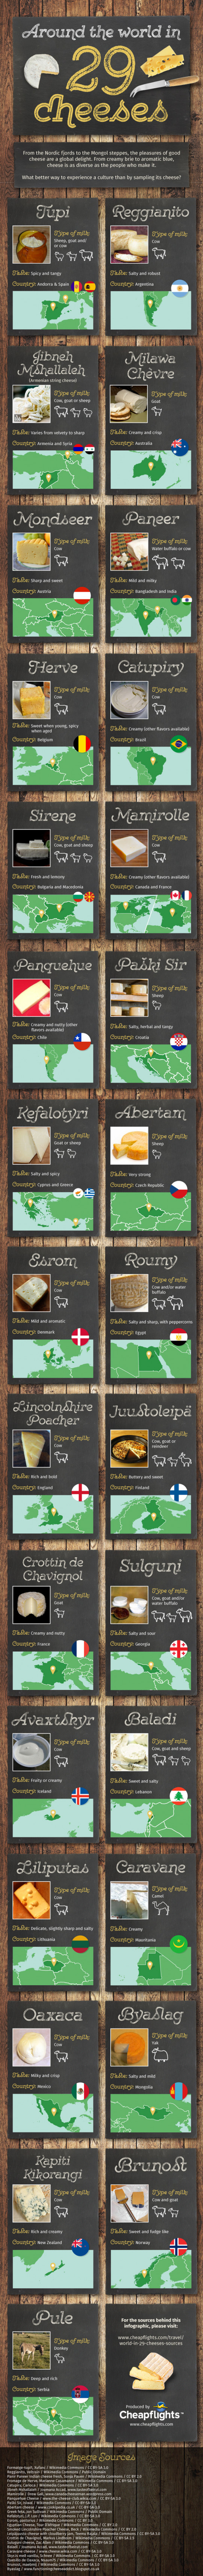 Around the World in 29 Cheeses